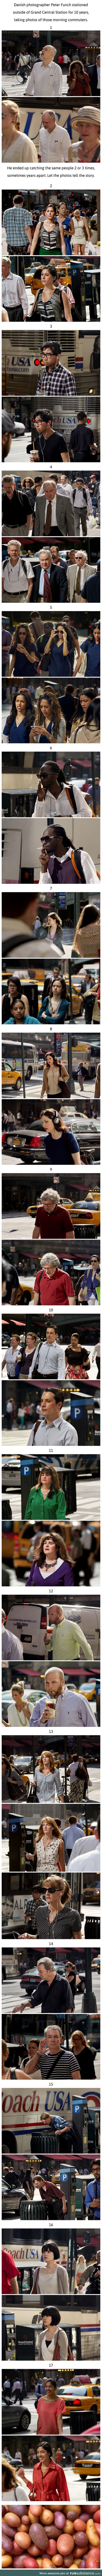 Photographer spends 9 years taking photos of  same people on their way back to work